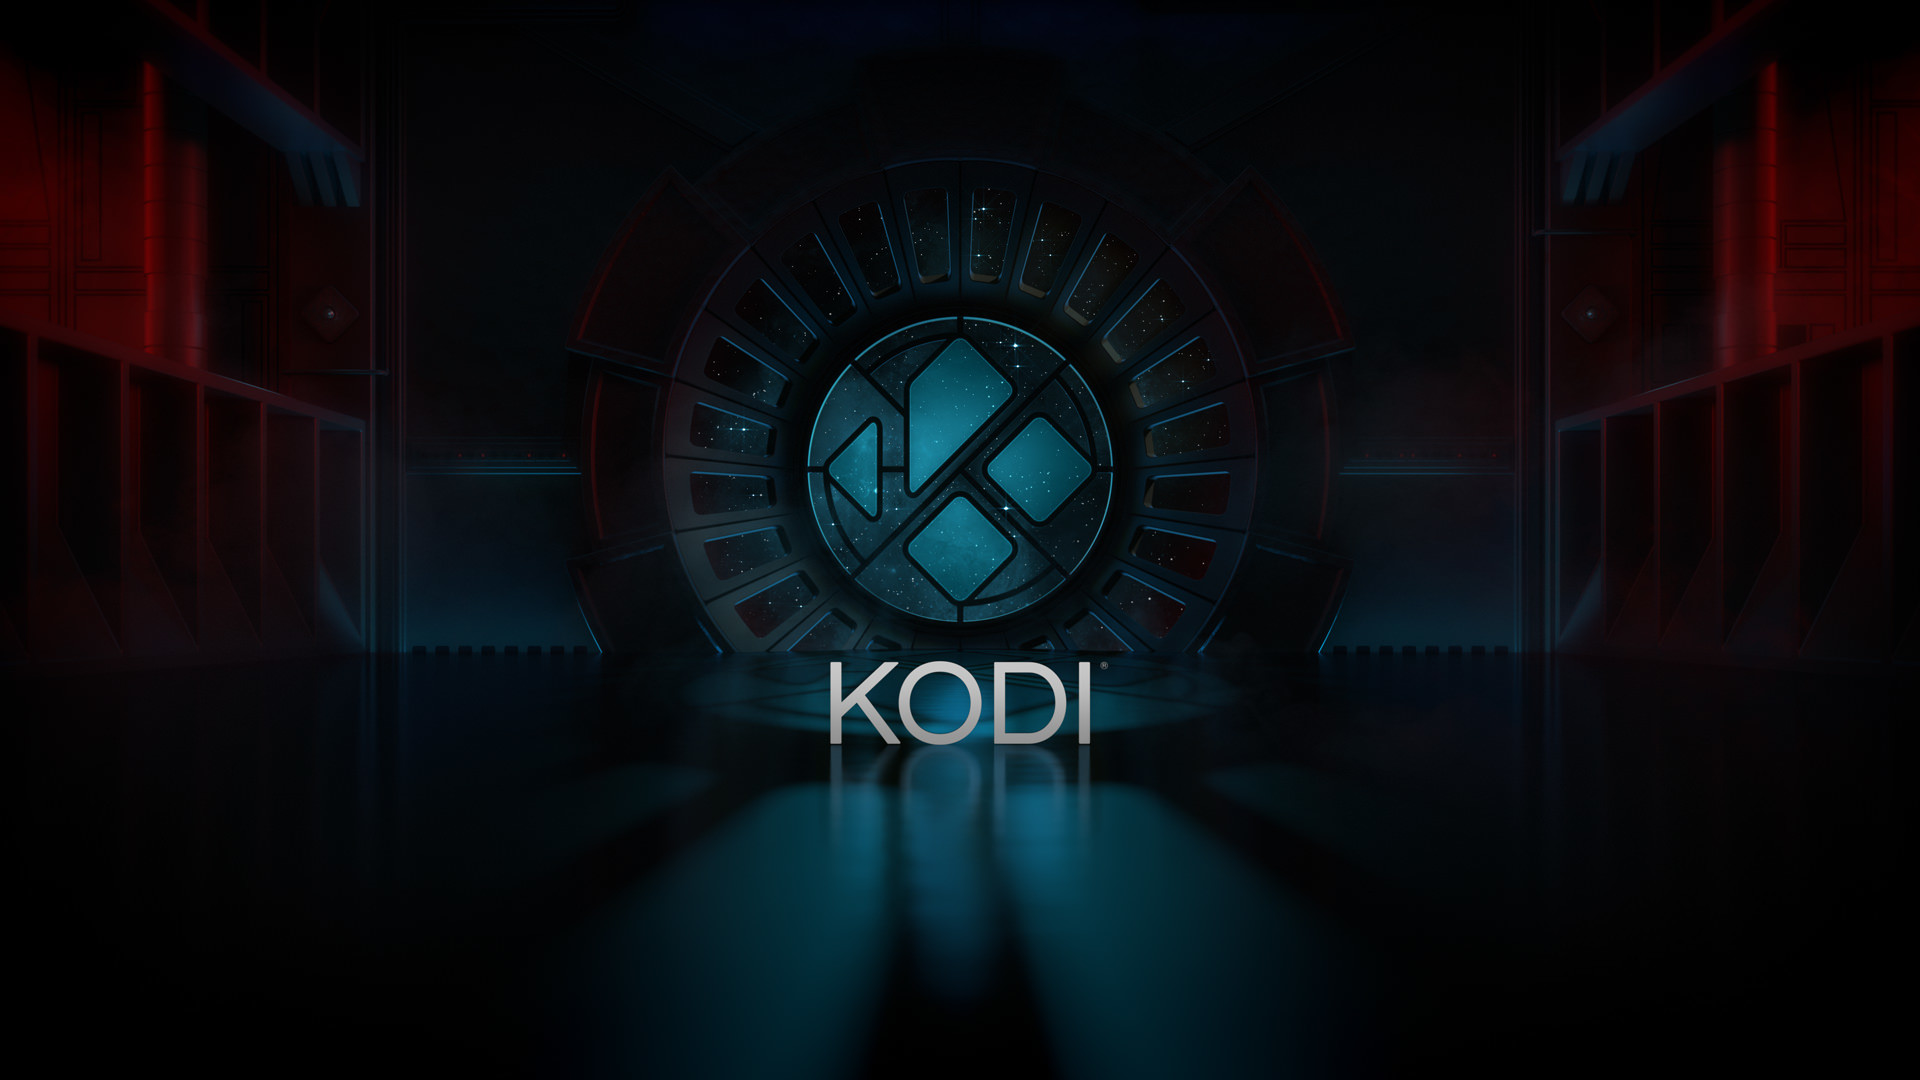 81 Kodi Hd Wallpapers on WallpaperPlay 1920x1080